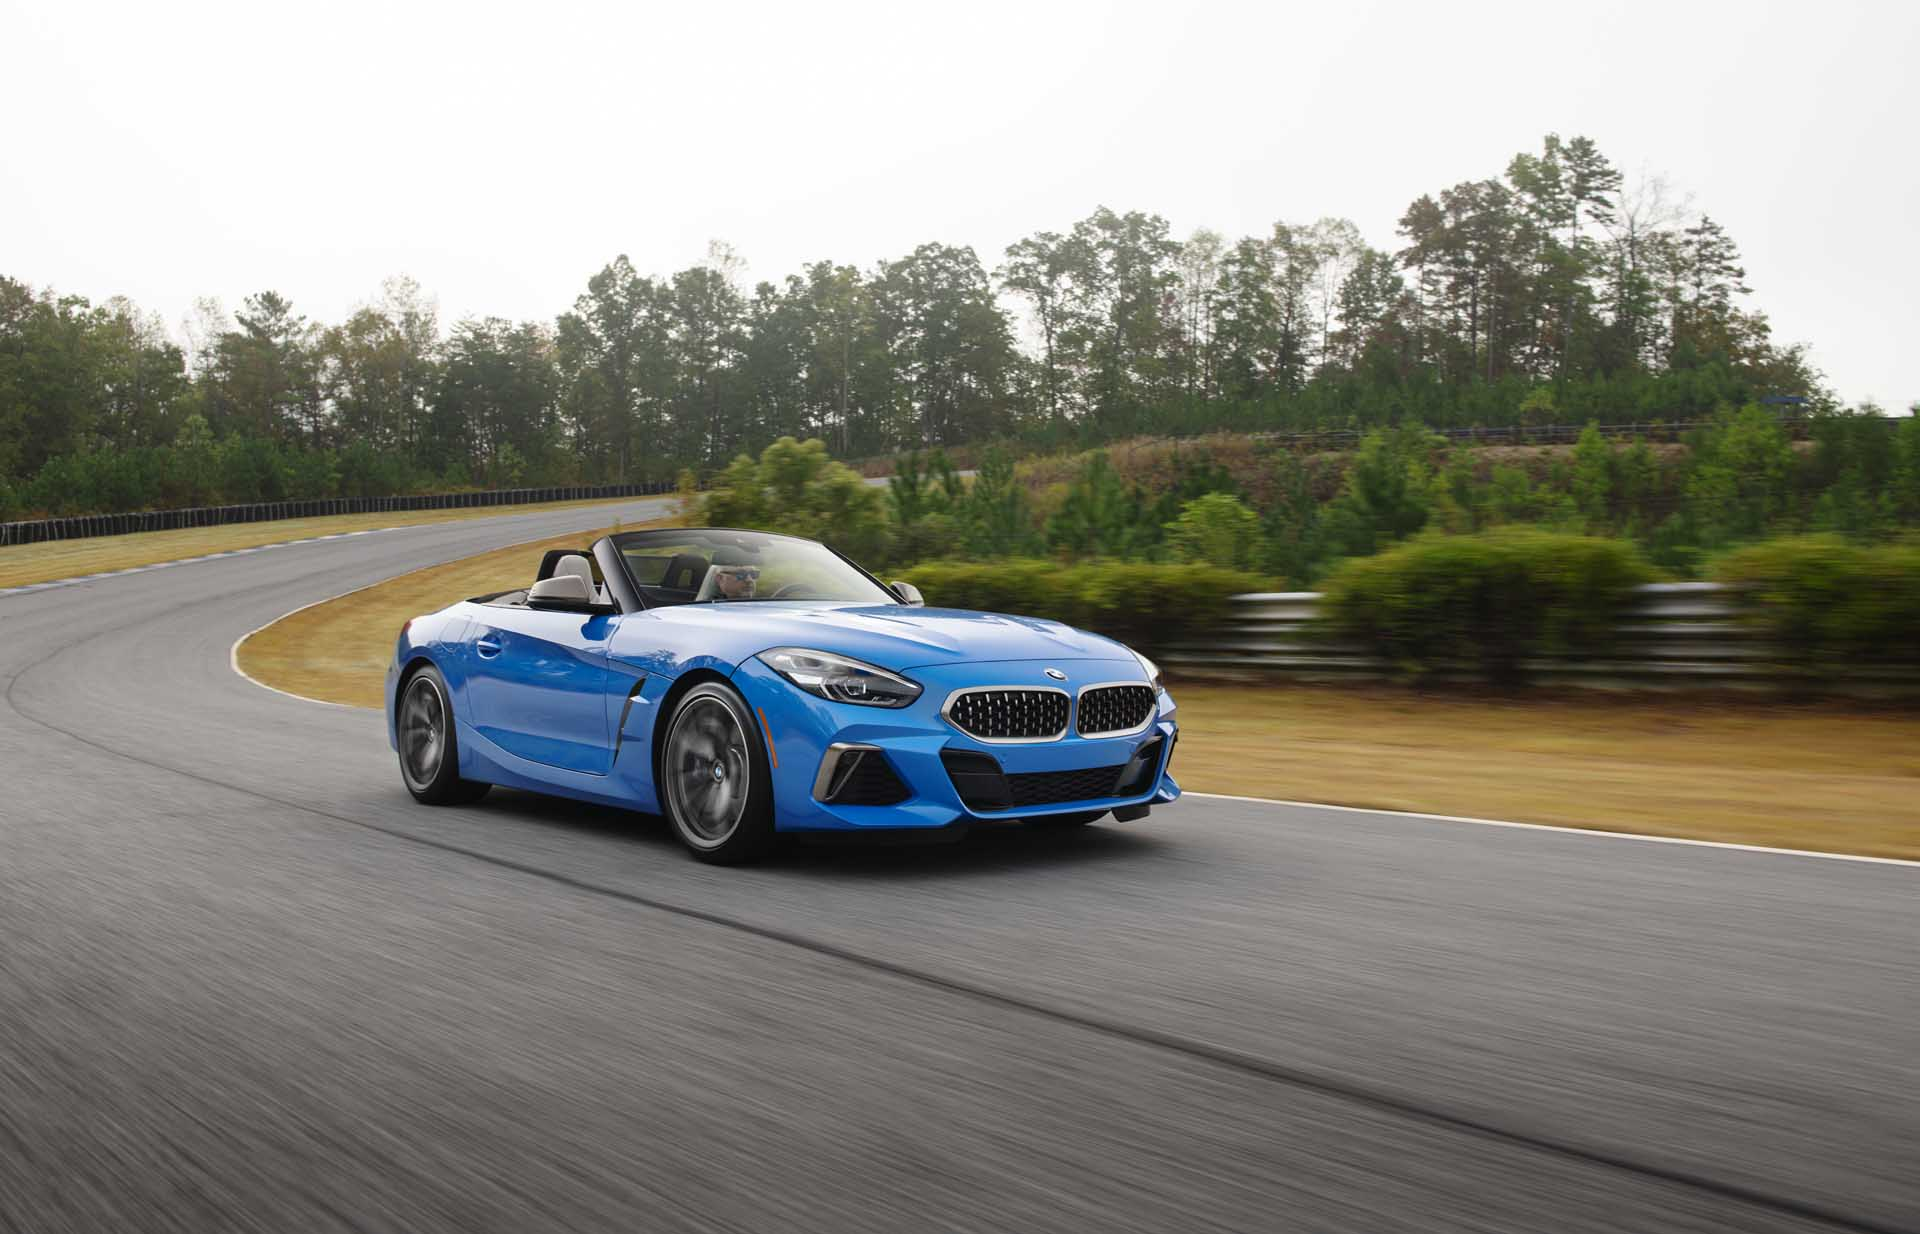 2020 BMW Z4 M40i Roadster (Color: Misano Blue Metallic) Front Three-Quarter Wallpapers (5)